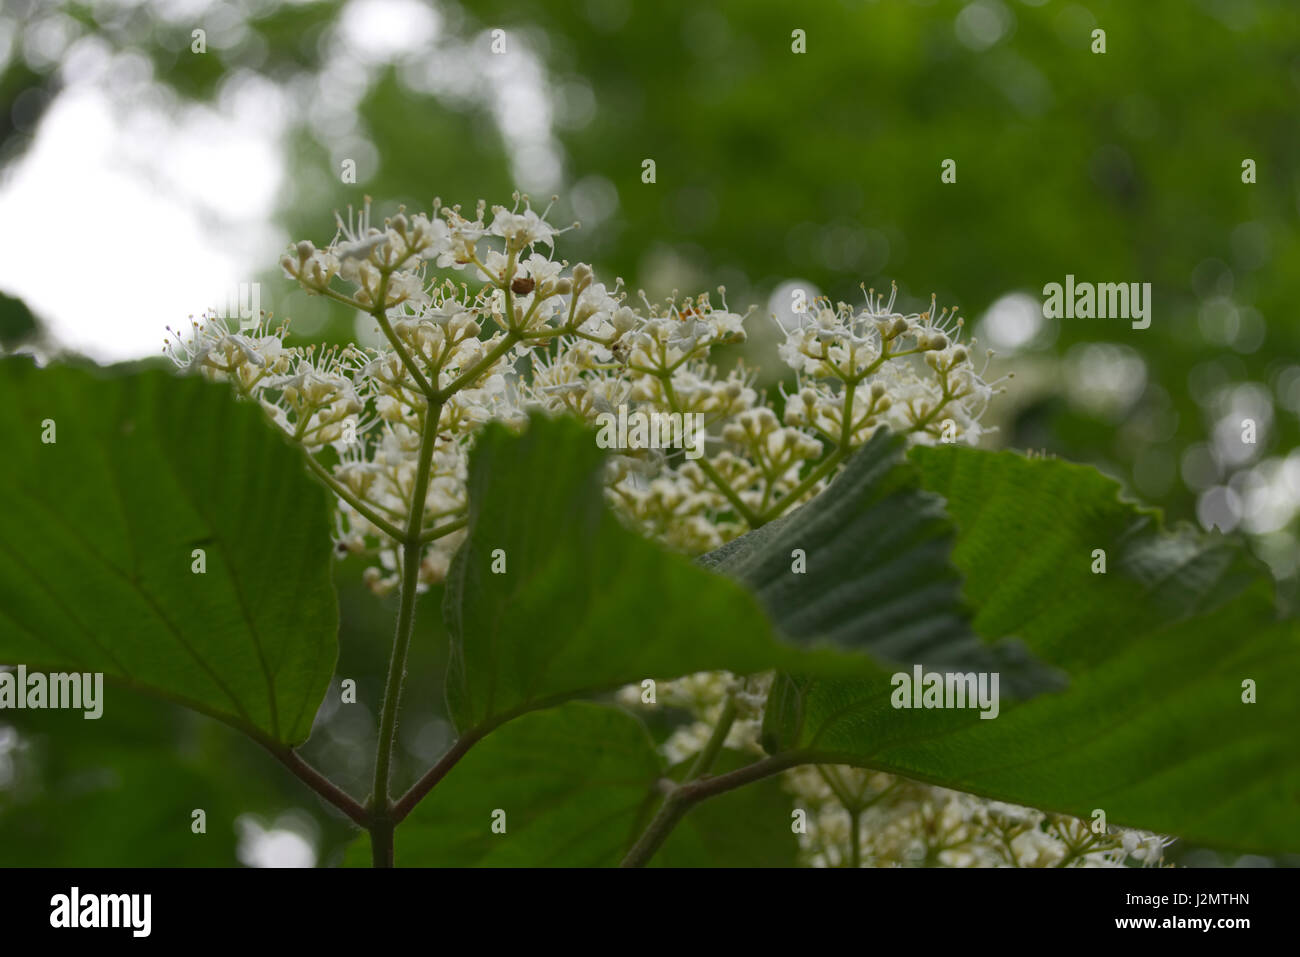 Close up photos of flowers, plants and trees Stock Photo